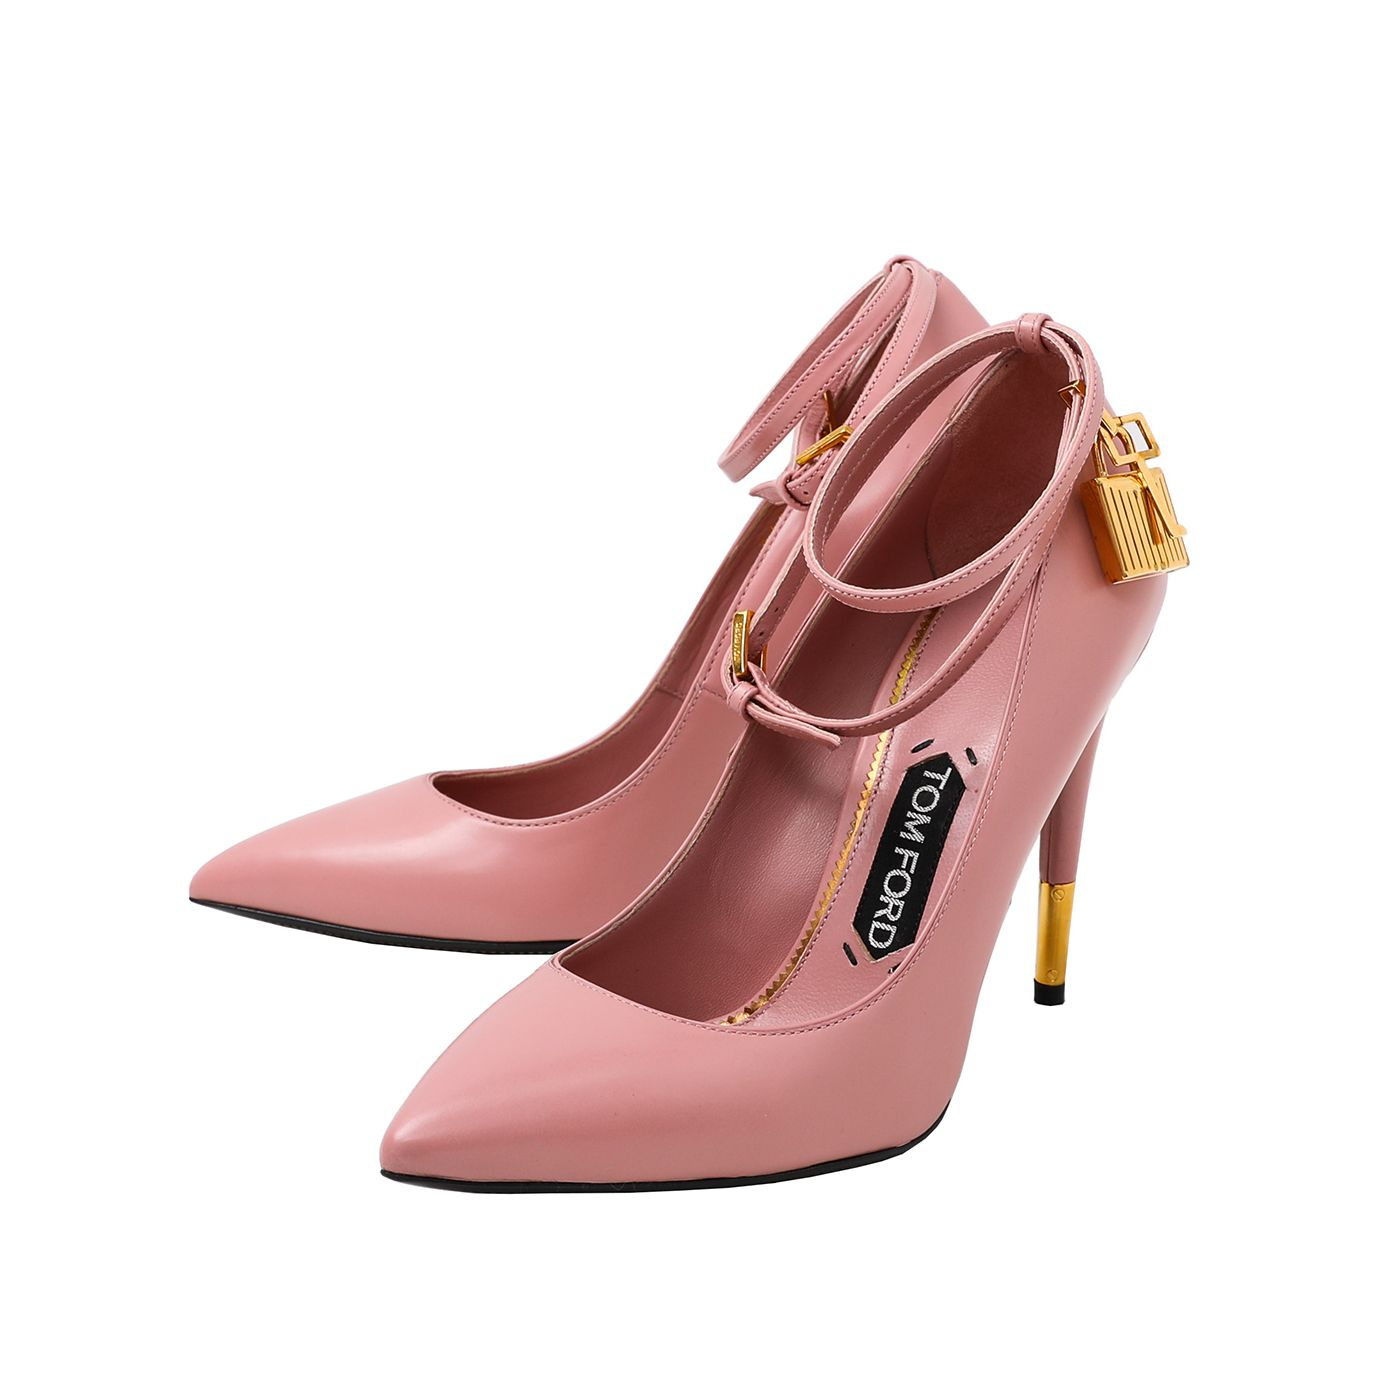 Tom Ford Soft Pink Ankle Strap Padlock Pump 38